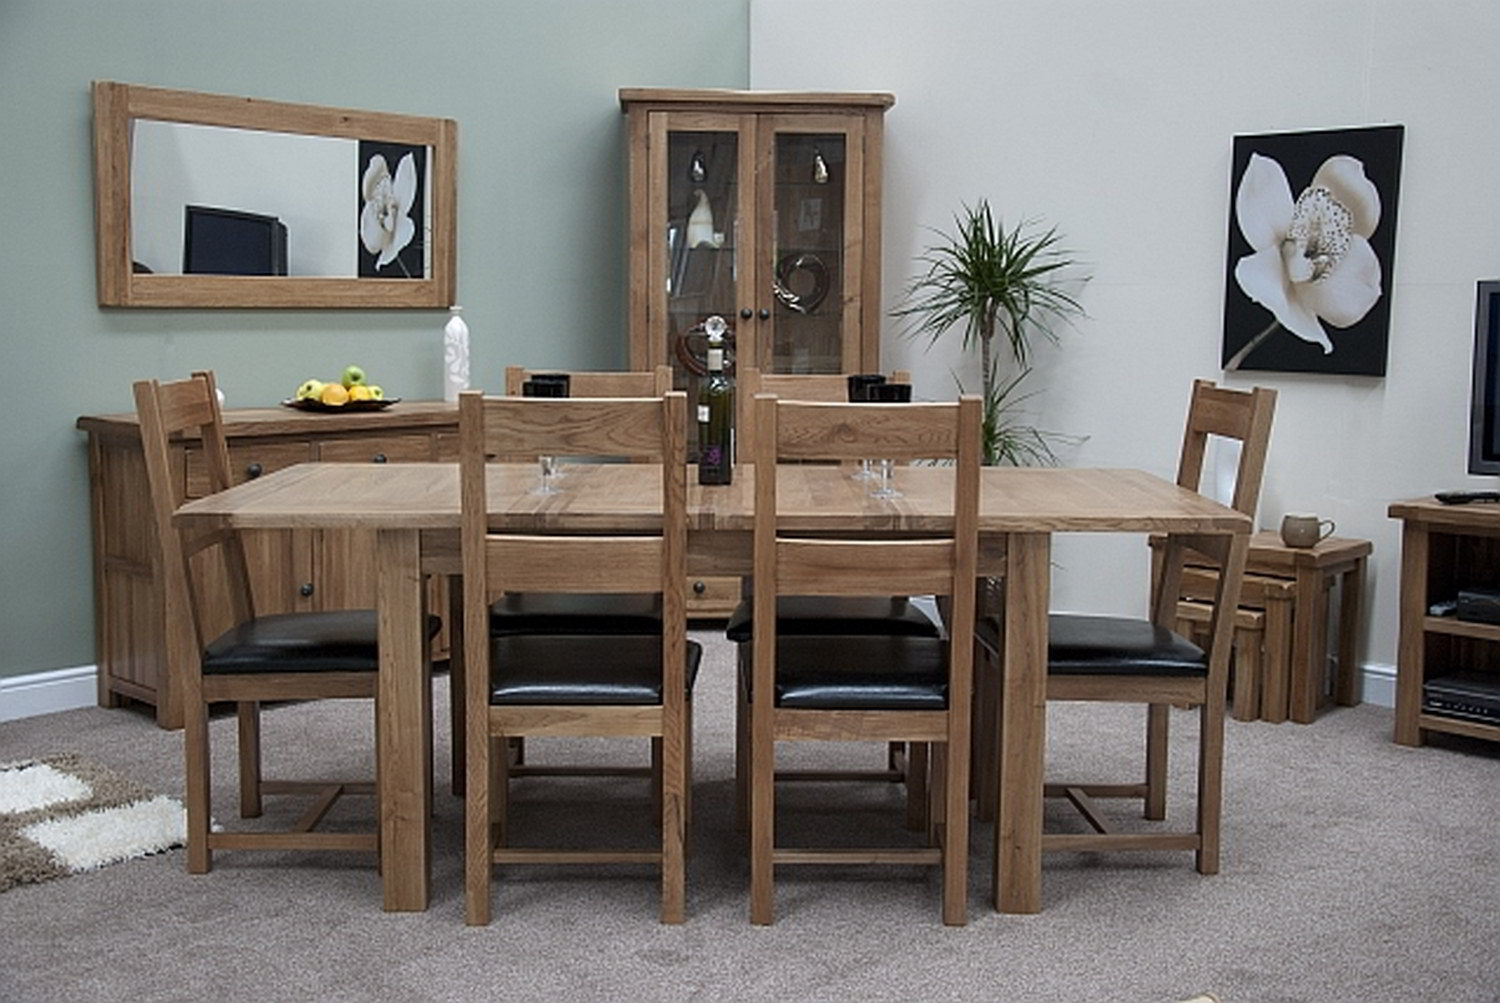 Tilson Solid Oak Furniture Extending Dining Table And Six Chairs Set EBay